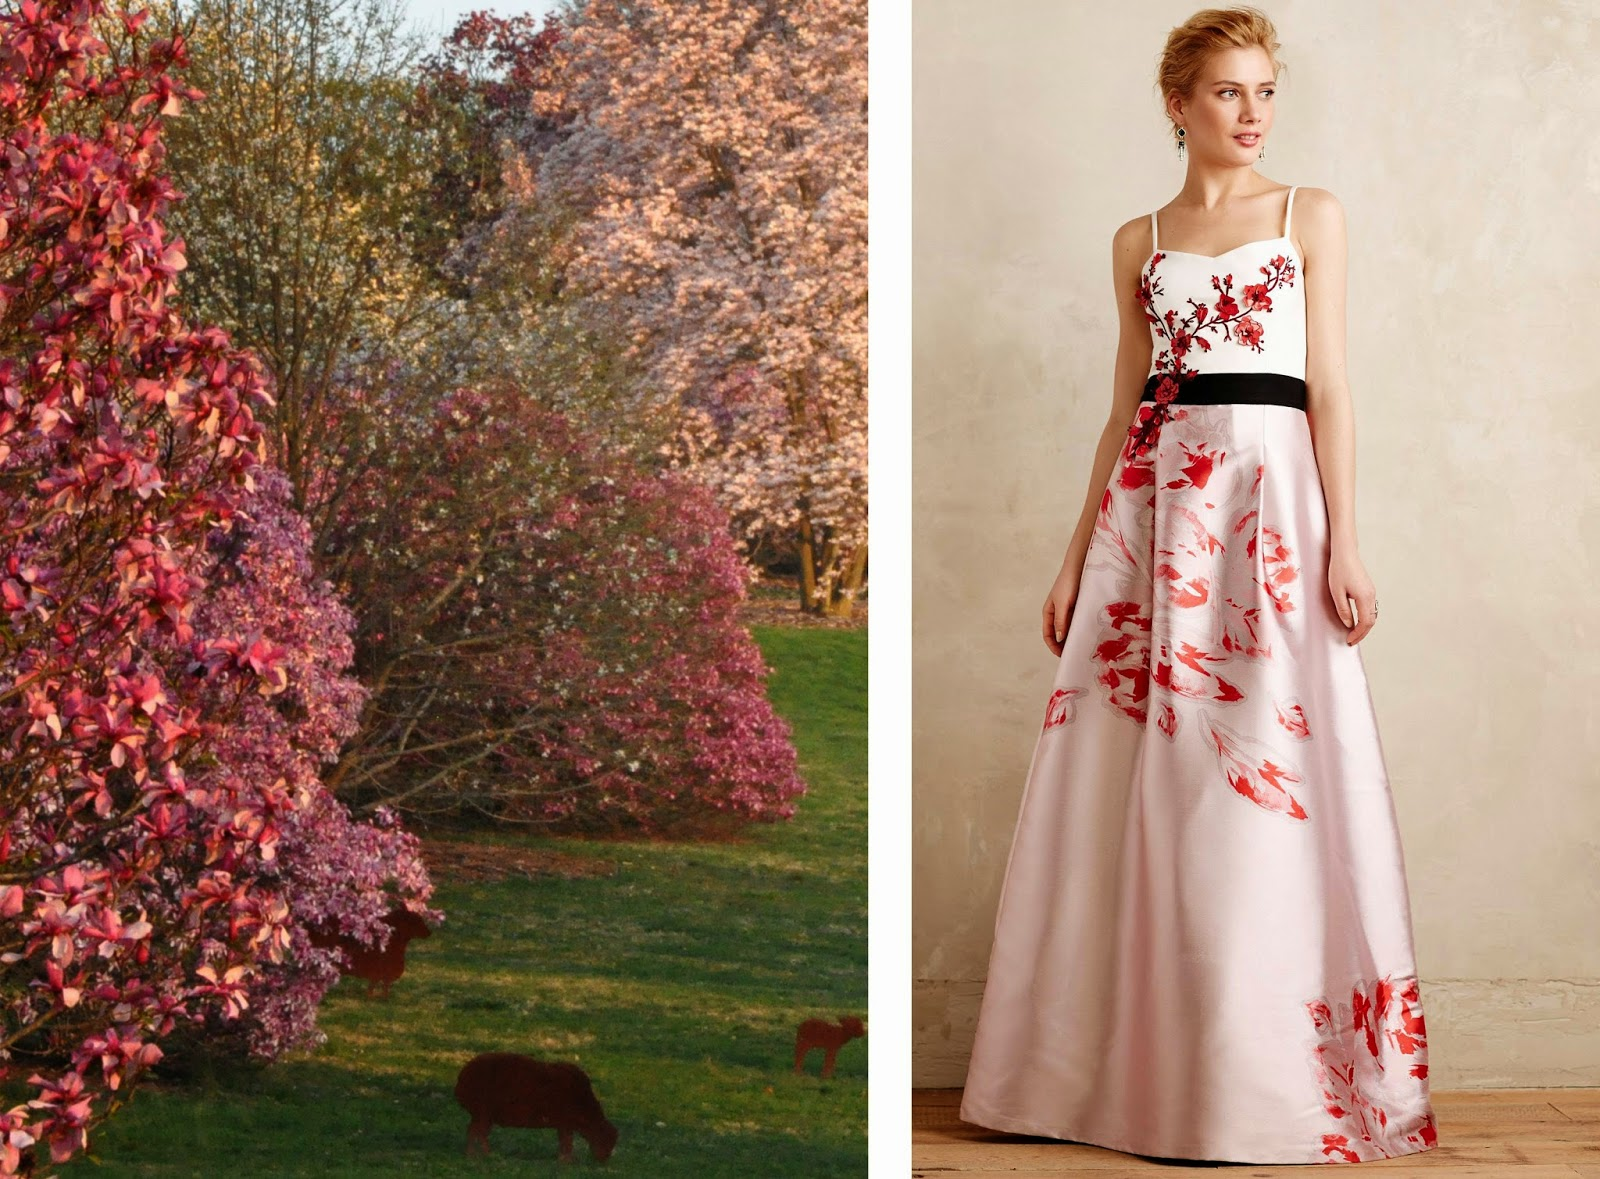 Morris Arboretum: Natural Fashionista: Gowns Inspired by Spring Blooms